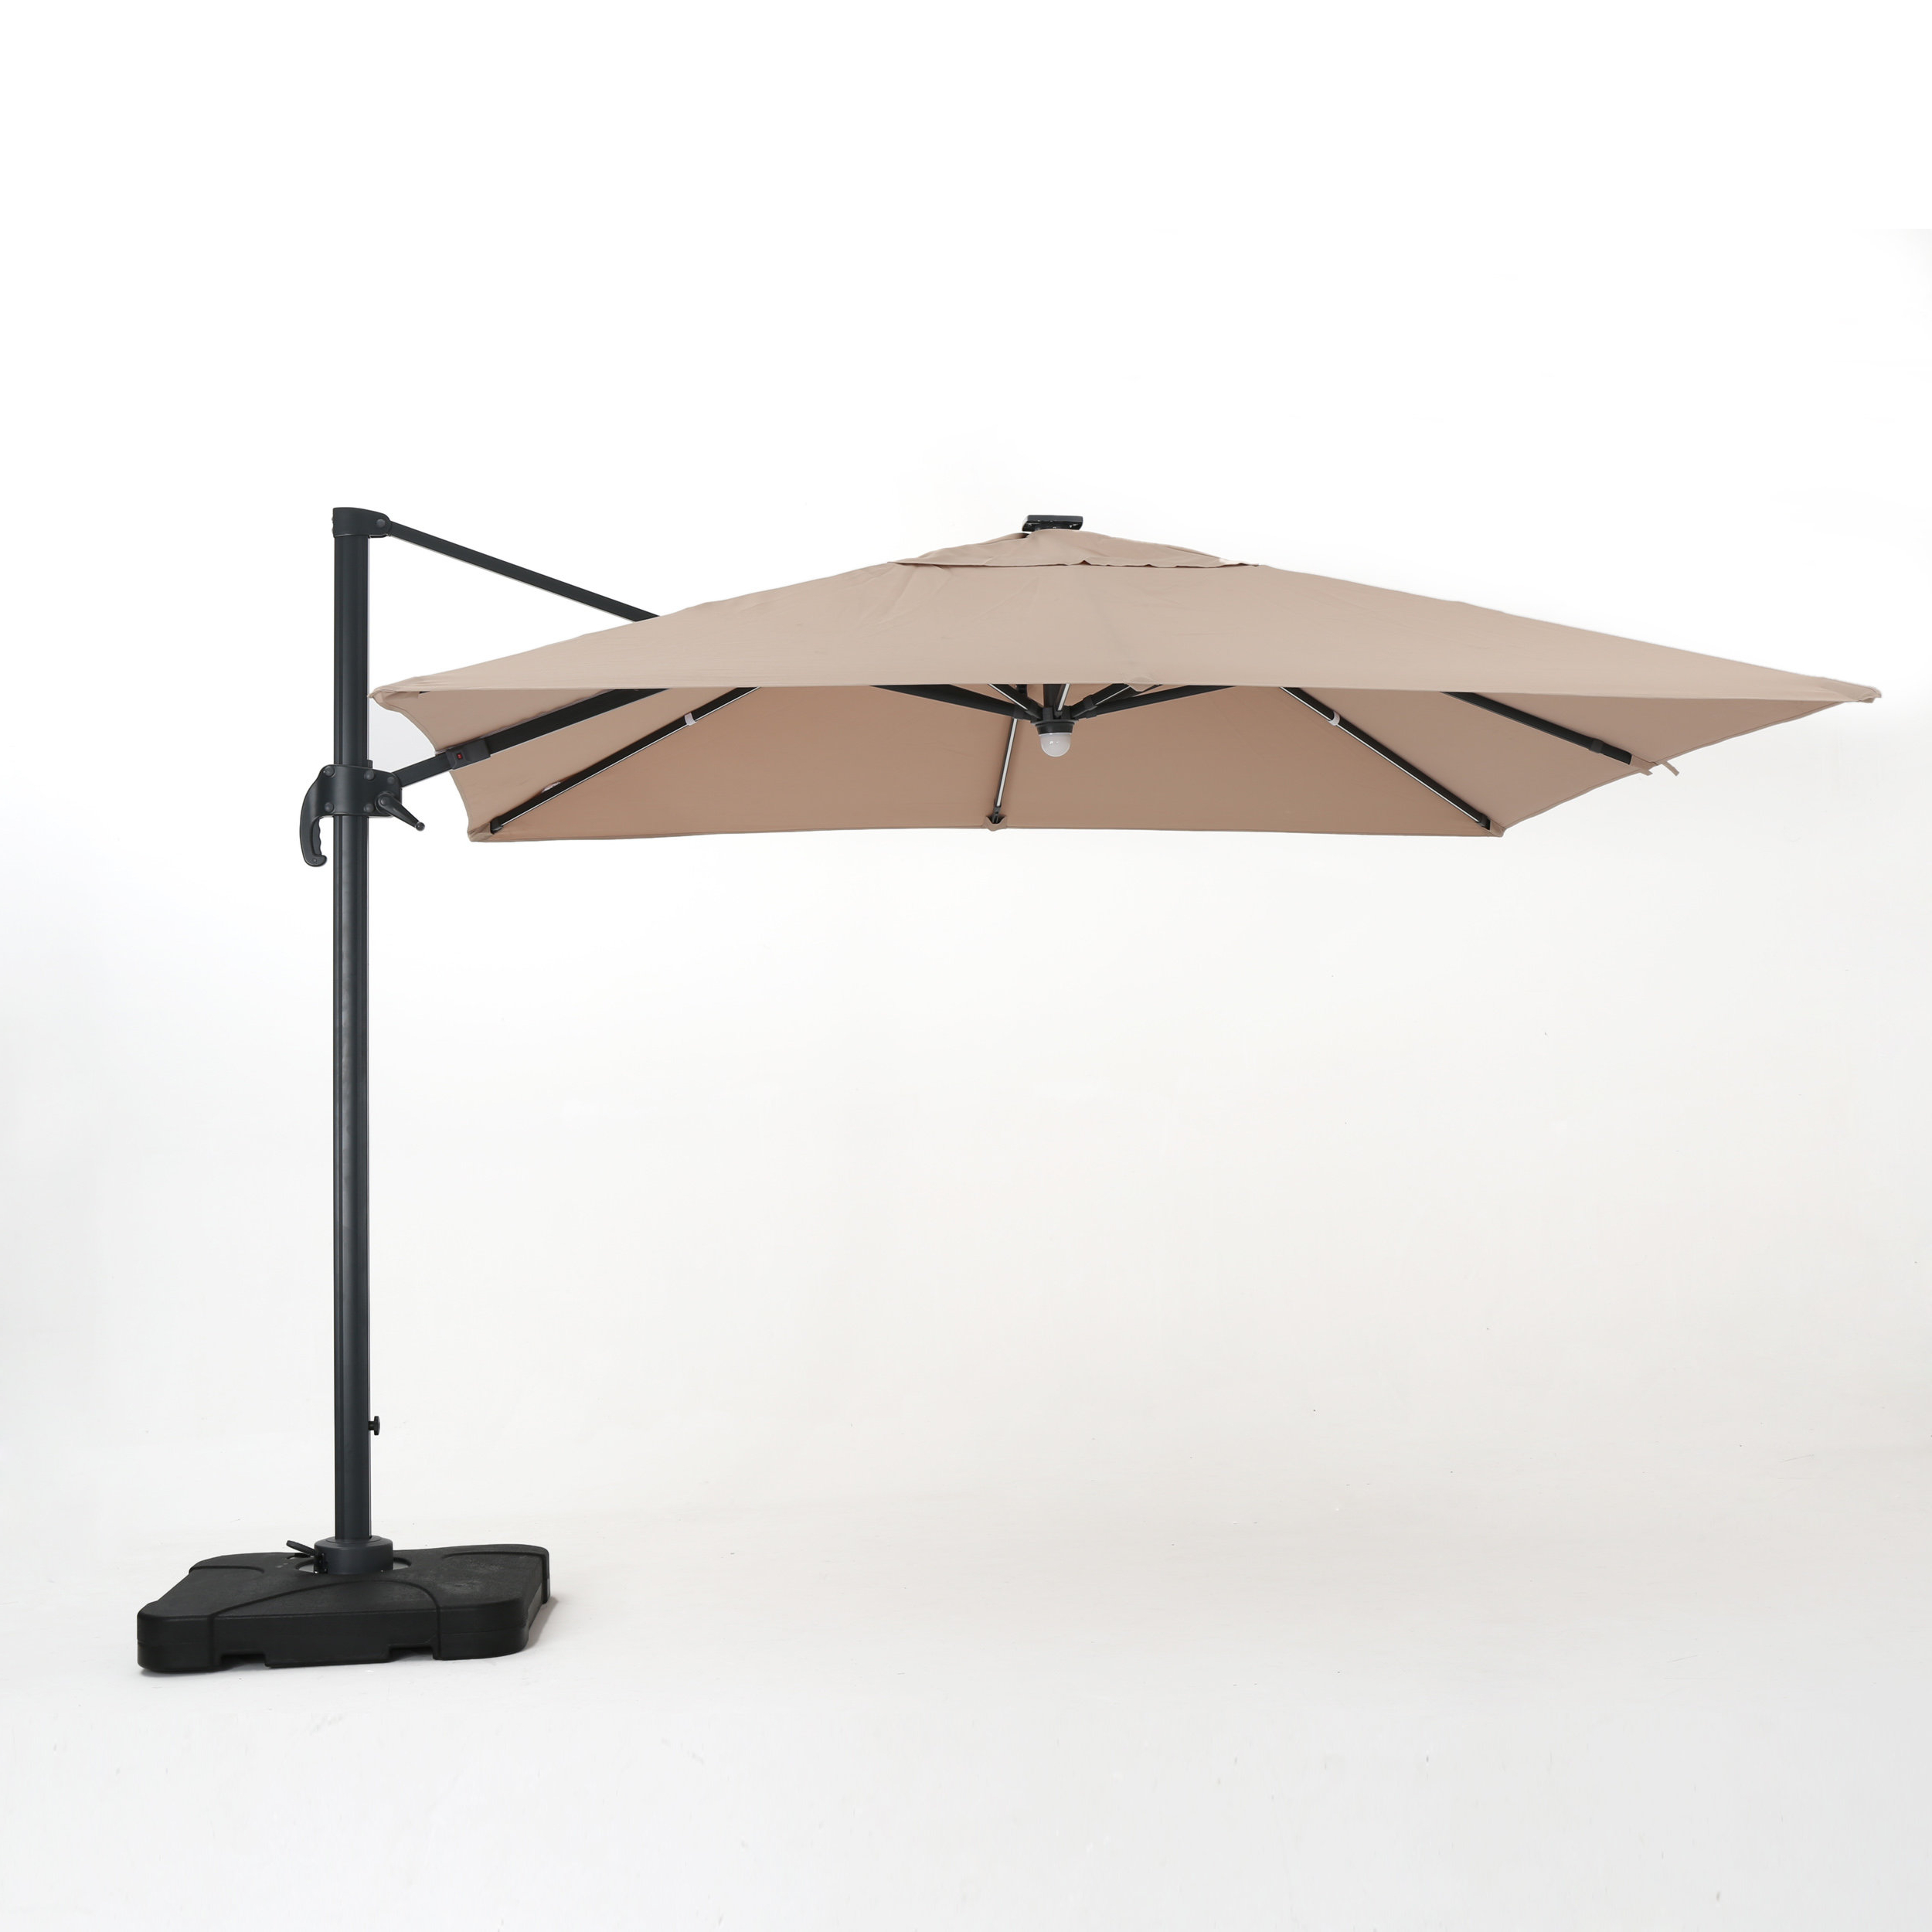 Jendayi Square Cantilever Umbrella With Regard To Most Up To Date Bondi Square Cantilever Umbrellas (View 5 of 20)